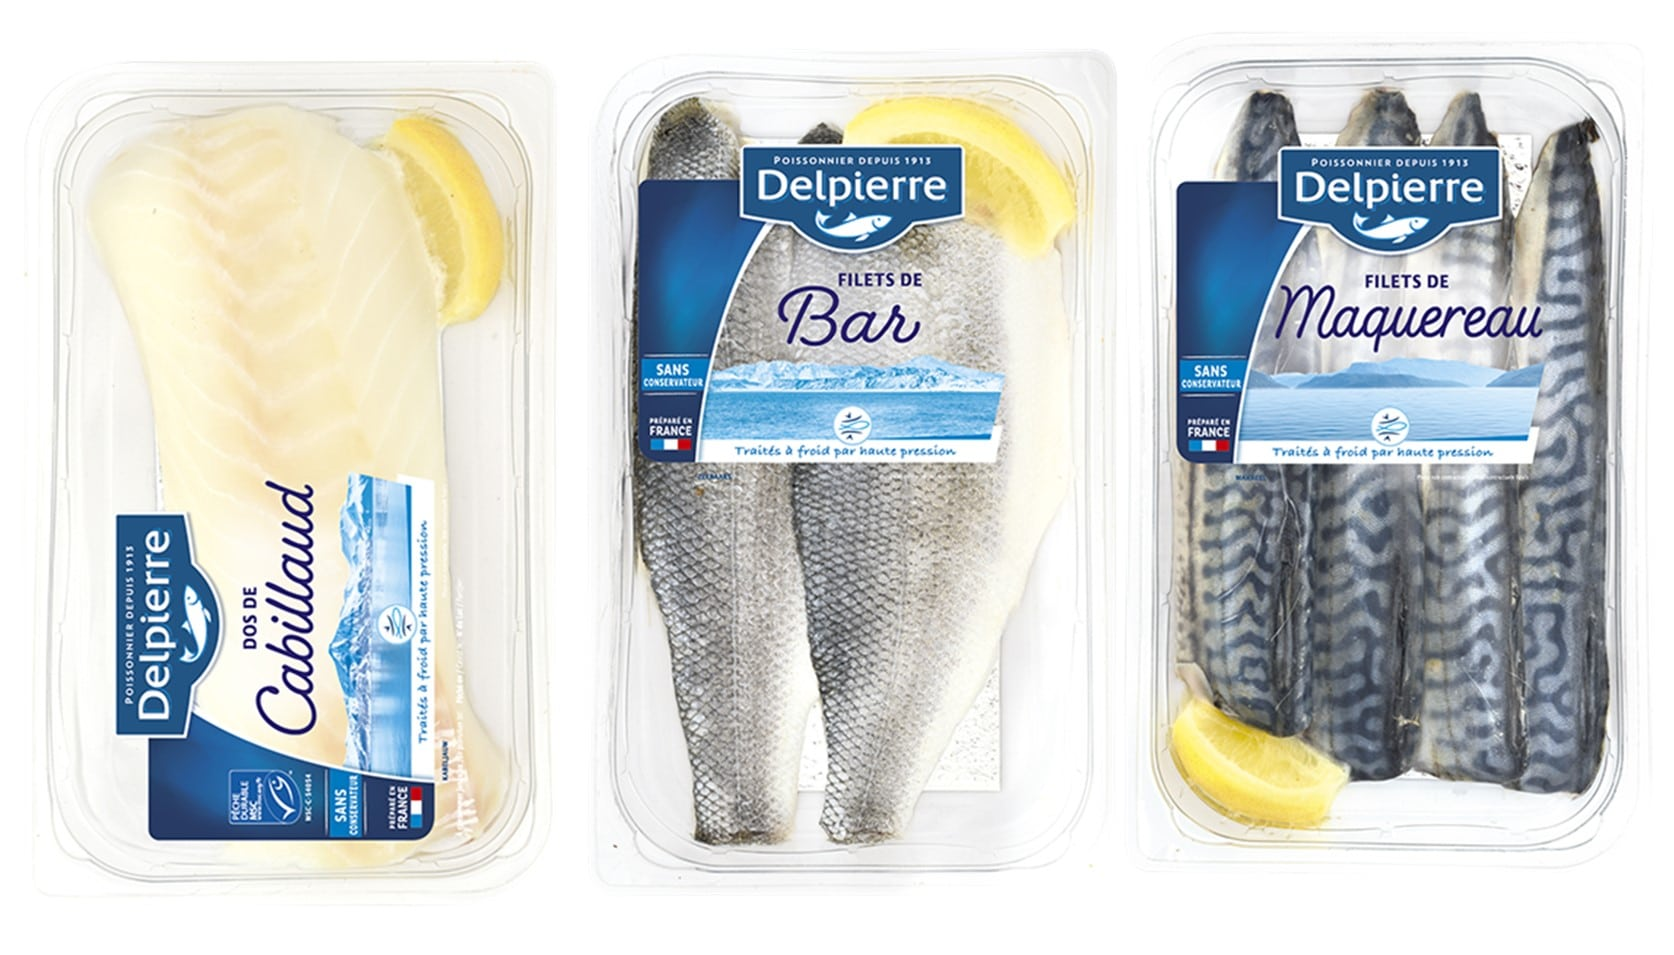 Fig. 5. HPP raw fillets of cod (left), bar (middle) and maquereaux (right), Delpierre.